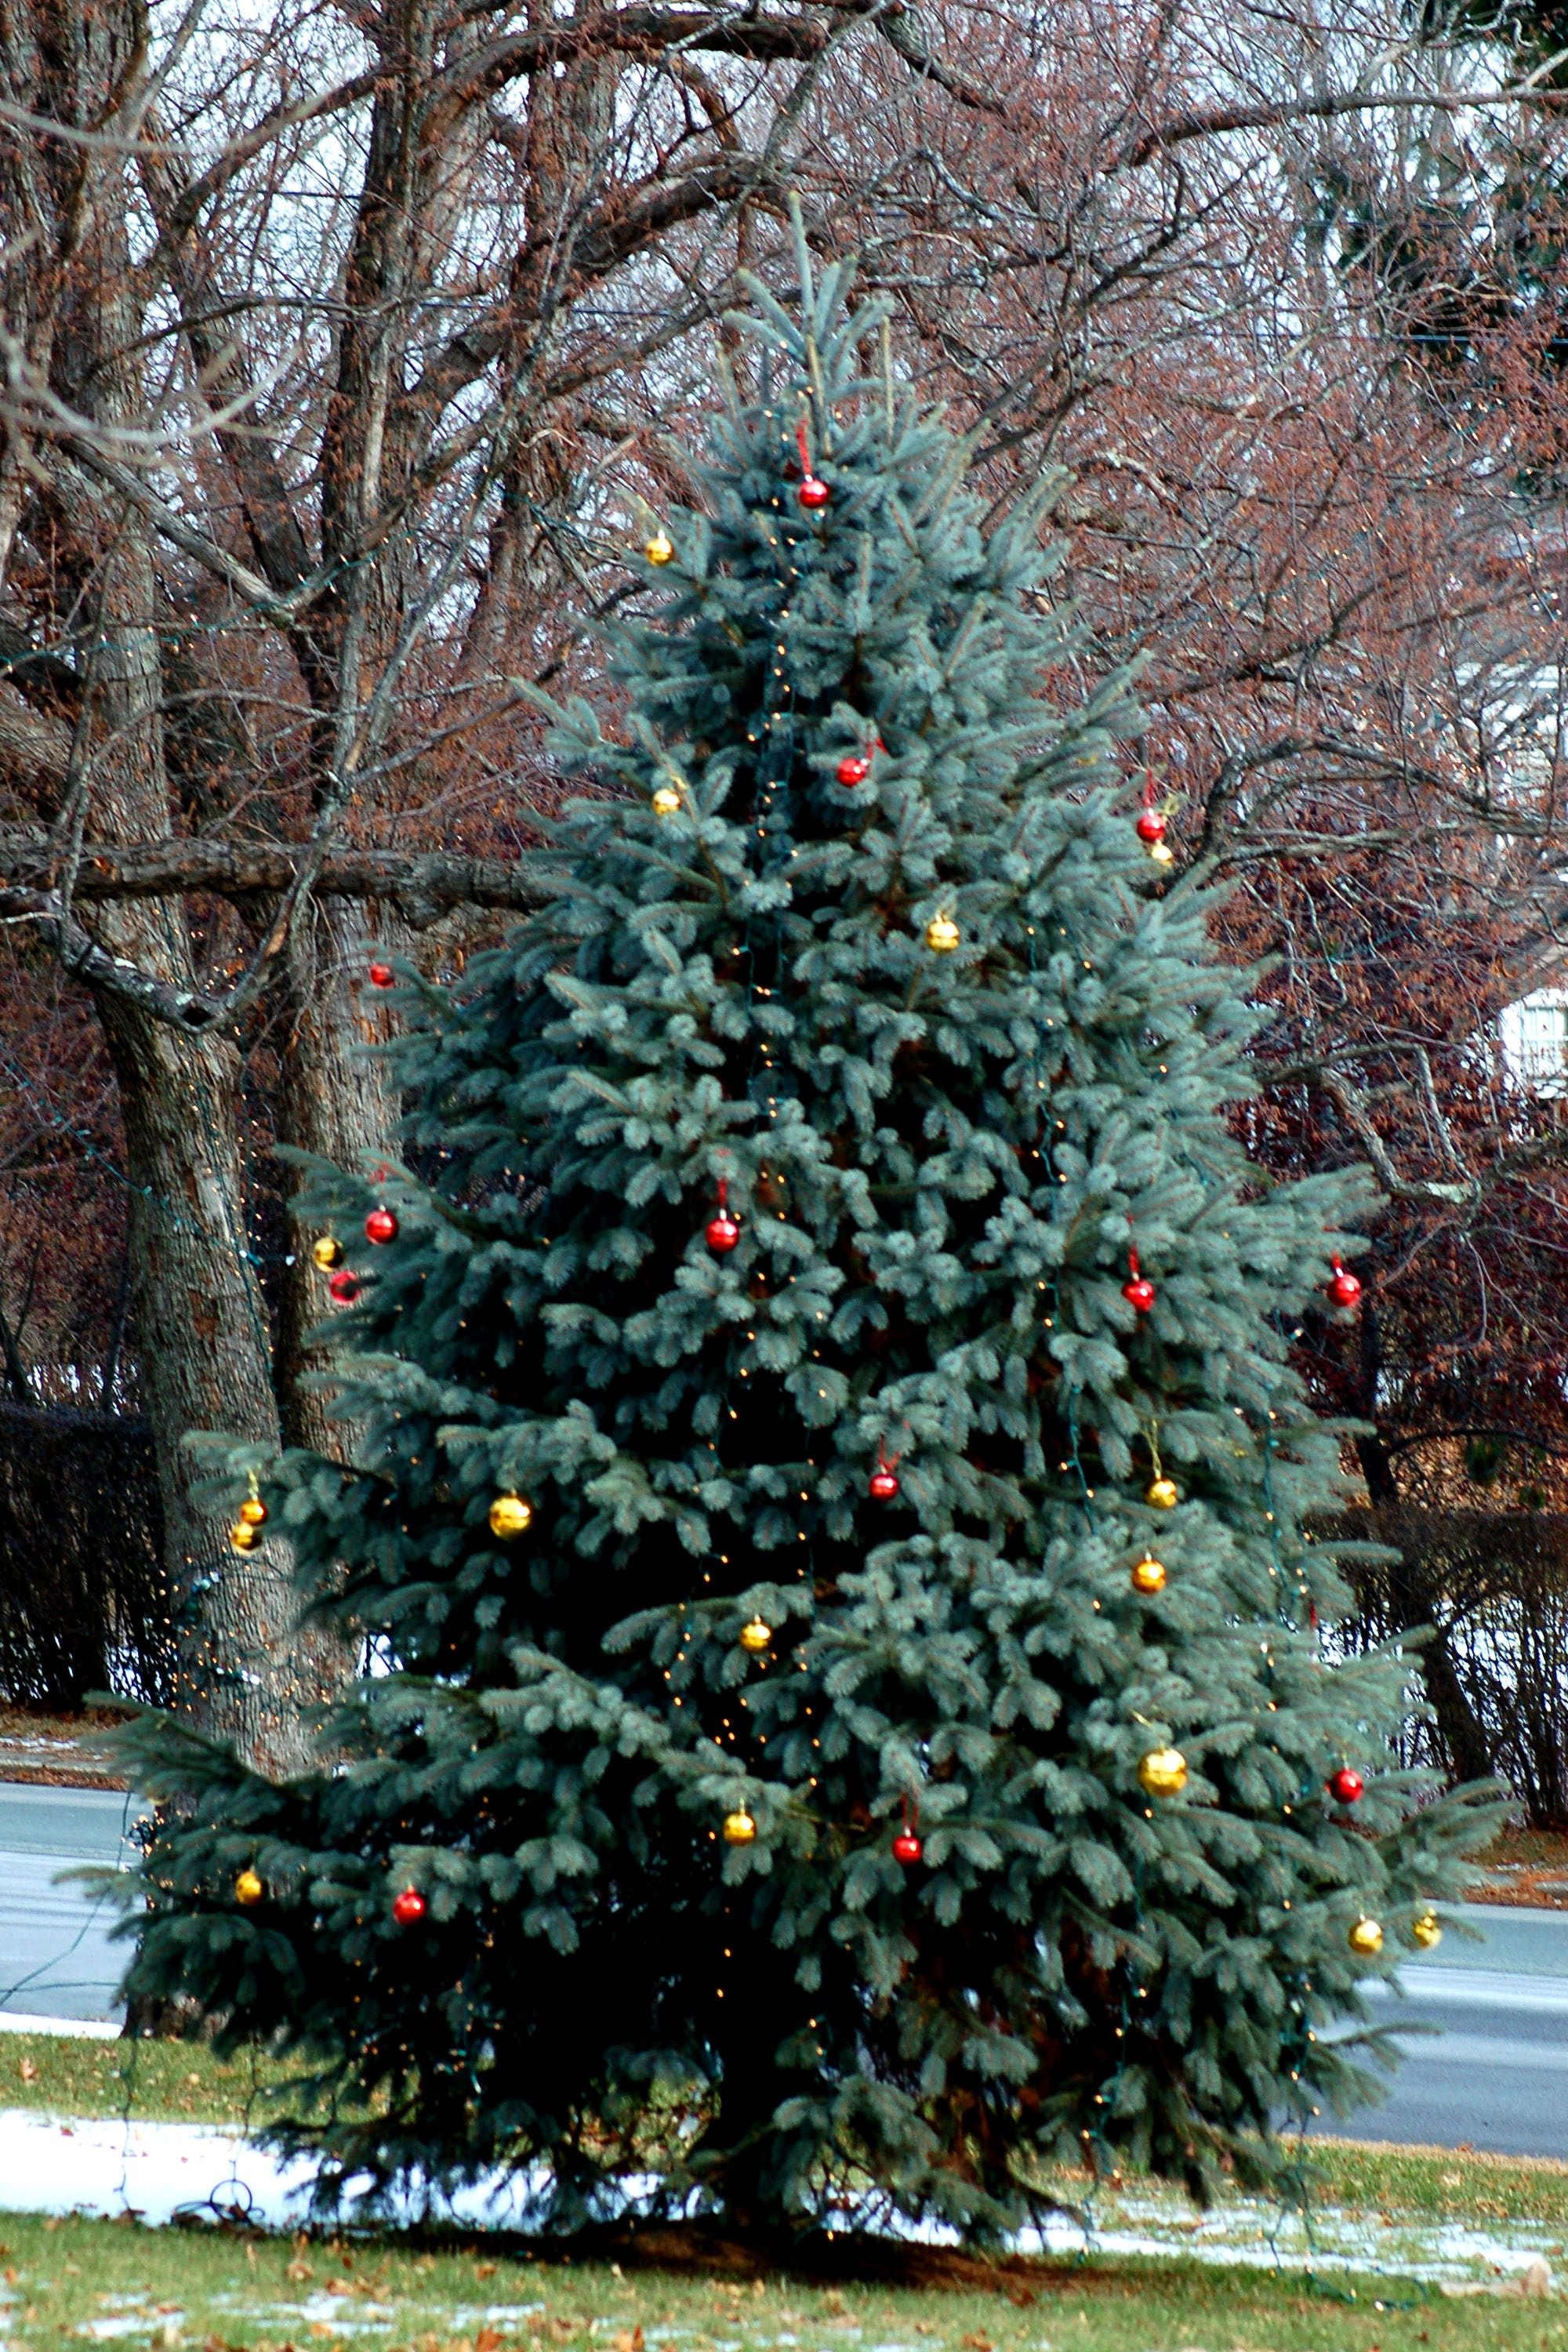 Outdoor Christmas trees can be decorated to provide cheer to an